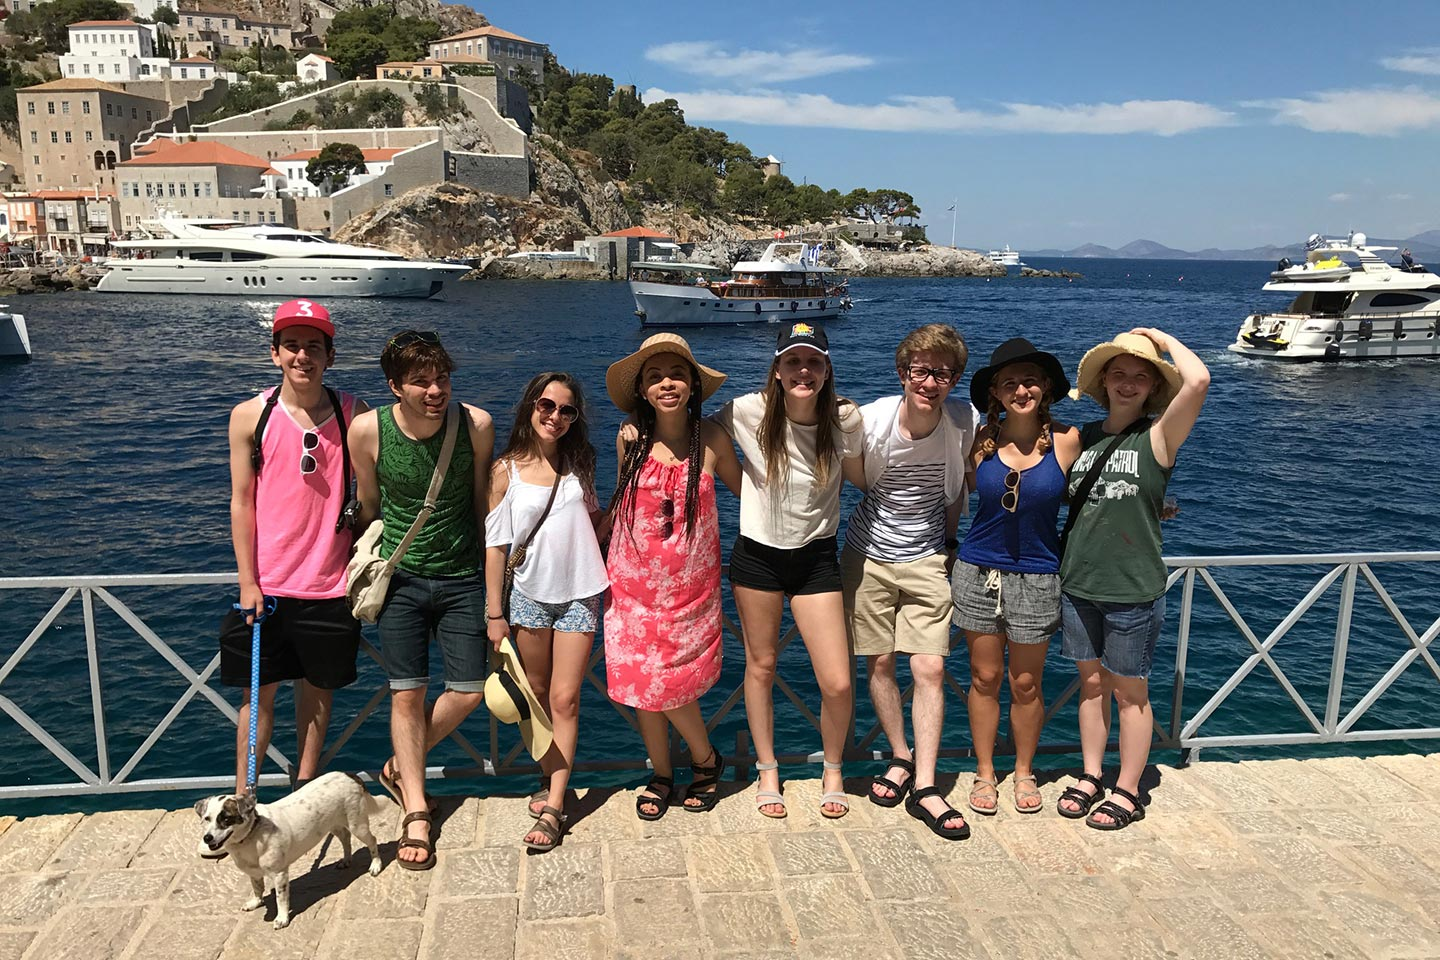 Students Mark Ujkstivani, Joel Hunter, Lily Talevski, Jordan Taylor, Natalie Manor, Noah Fillion, Alaina Whidby, Erin Wiley at Hydra port in Greece